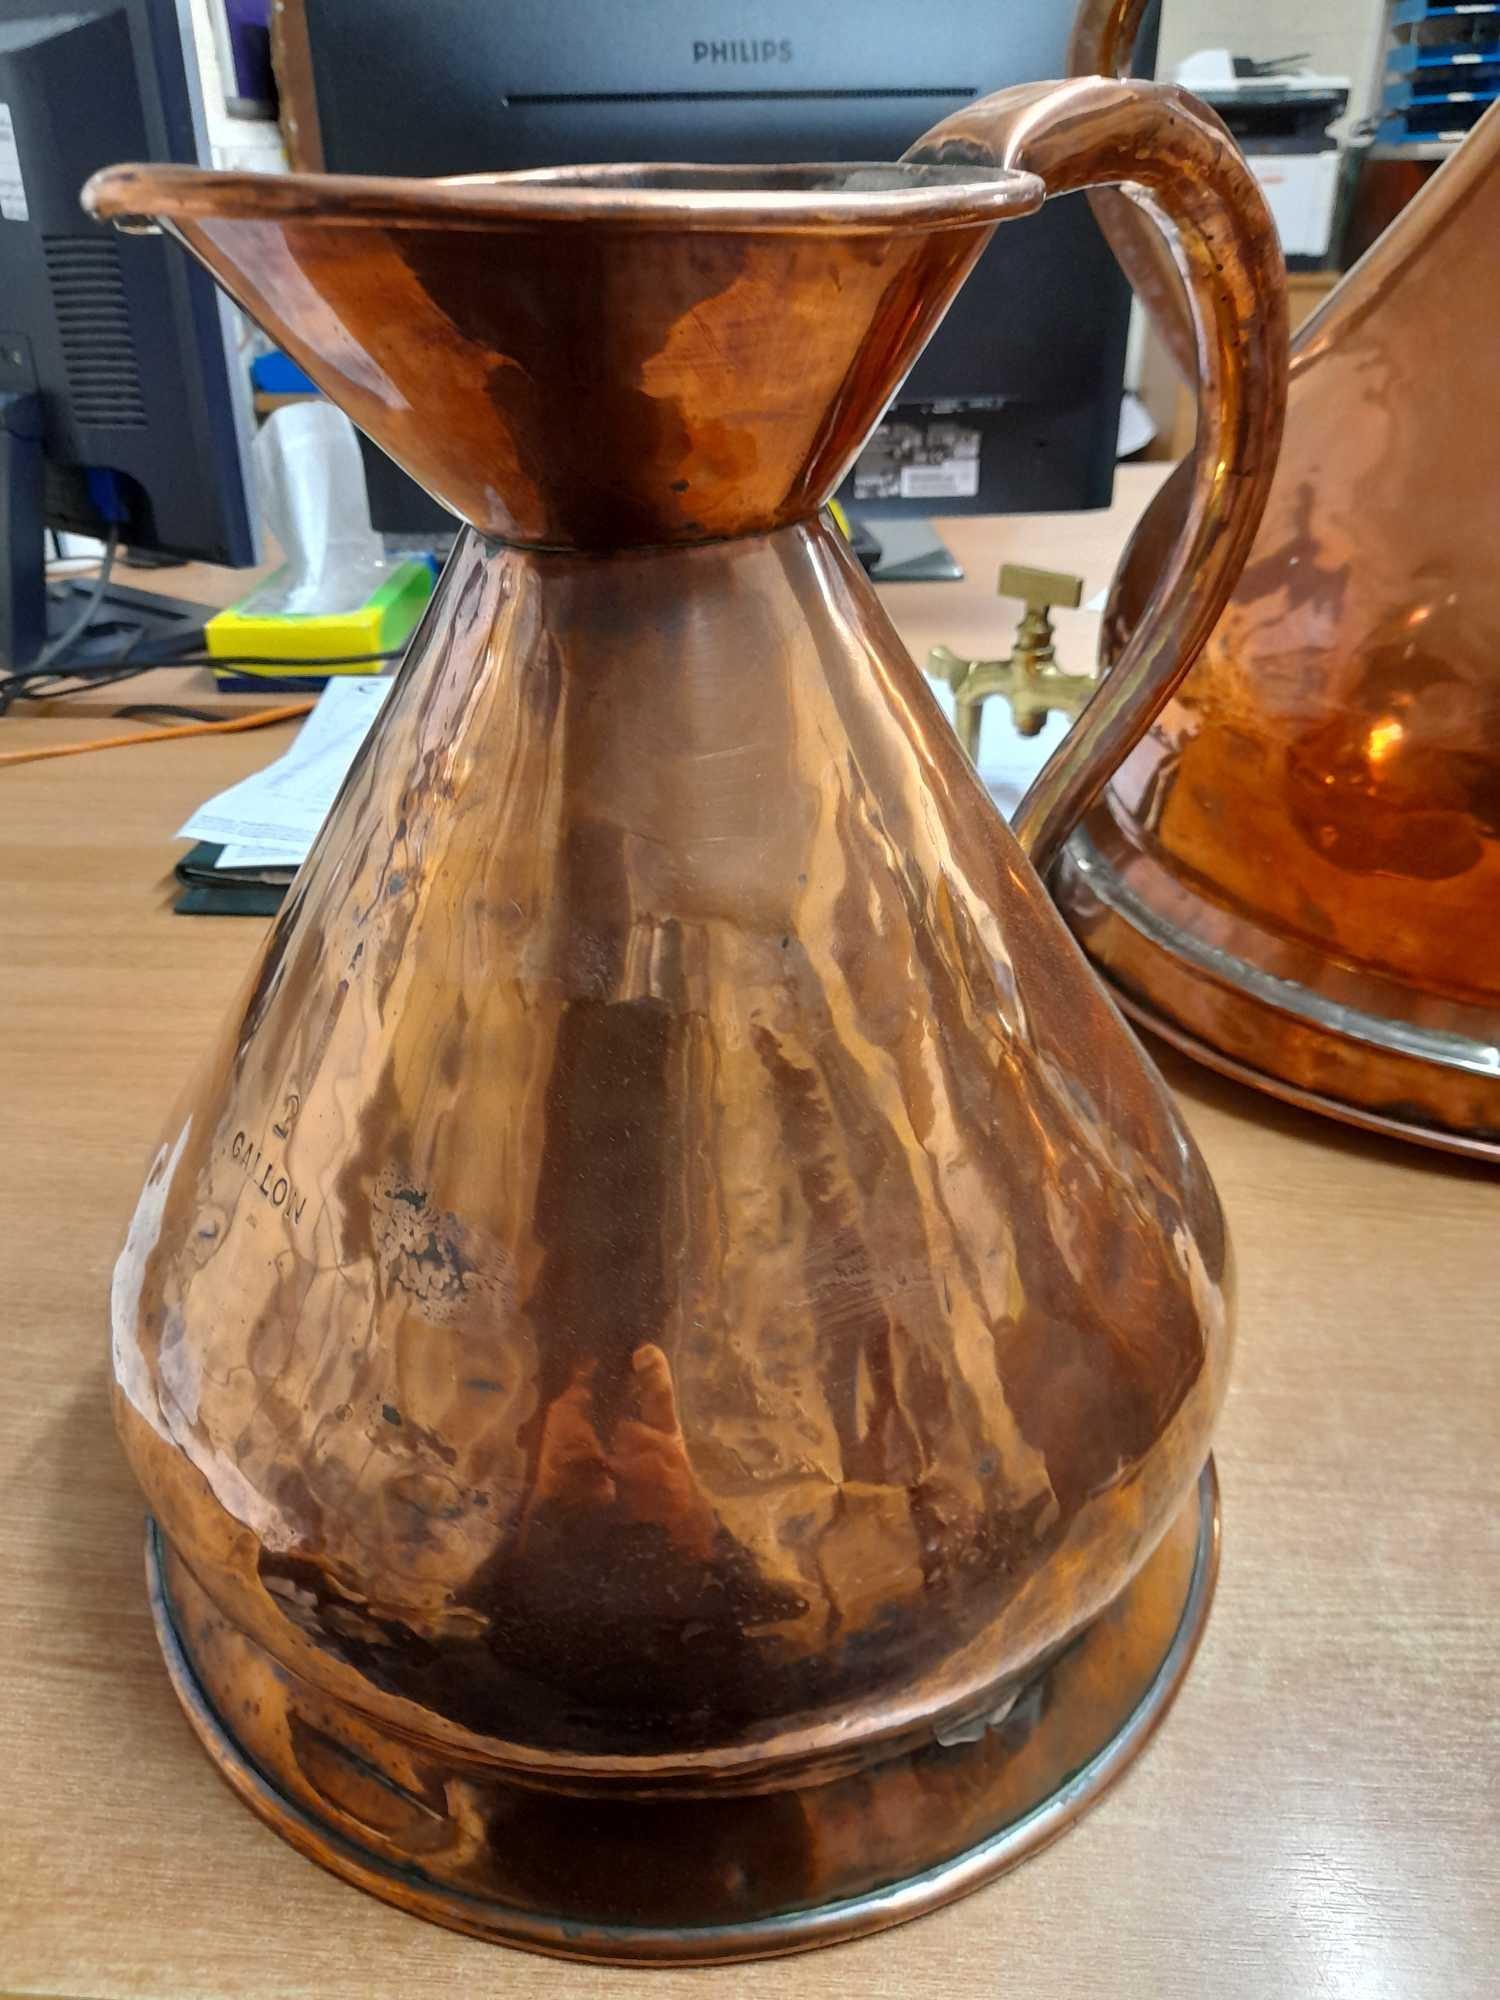 2 GALLON COPPER WHISKY MEASURING JUG - Image 2 of 7